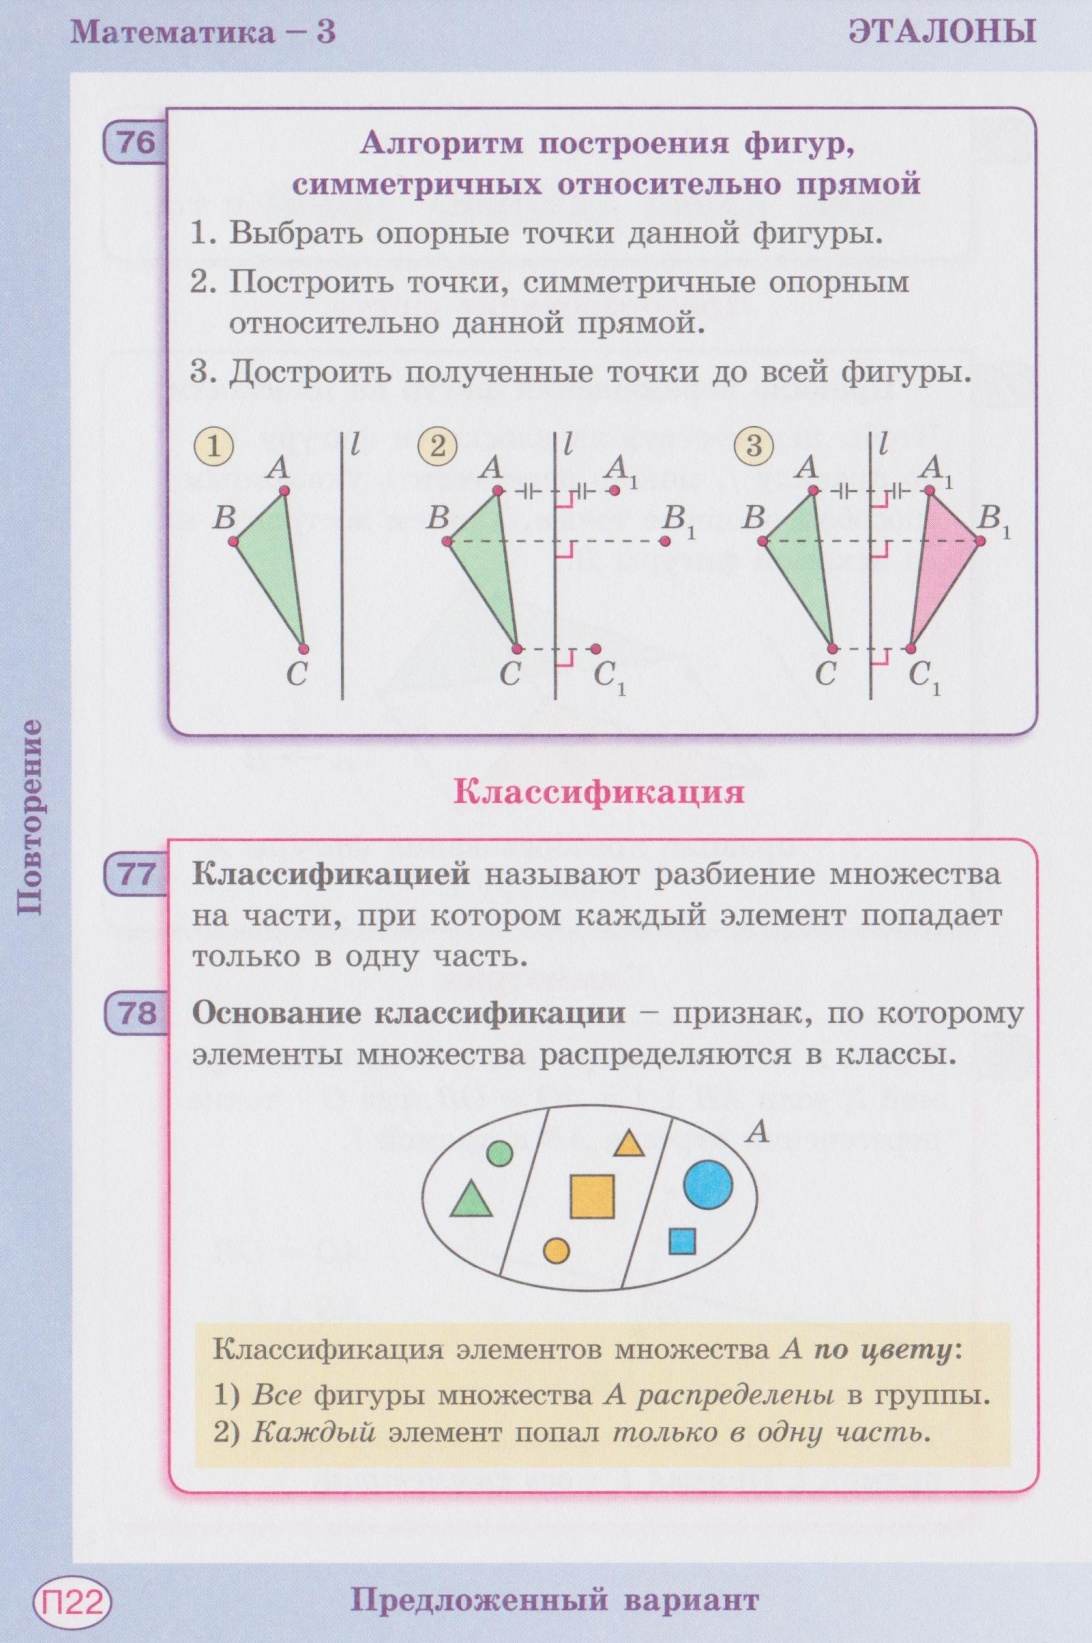 C:\Users\Настя\Pictures\2012-09-08 22\22 001.jpg